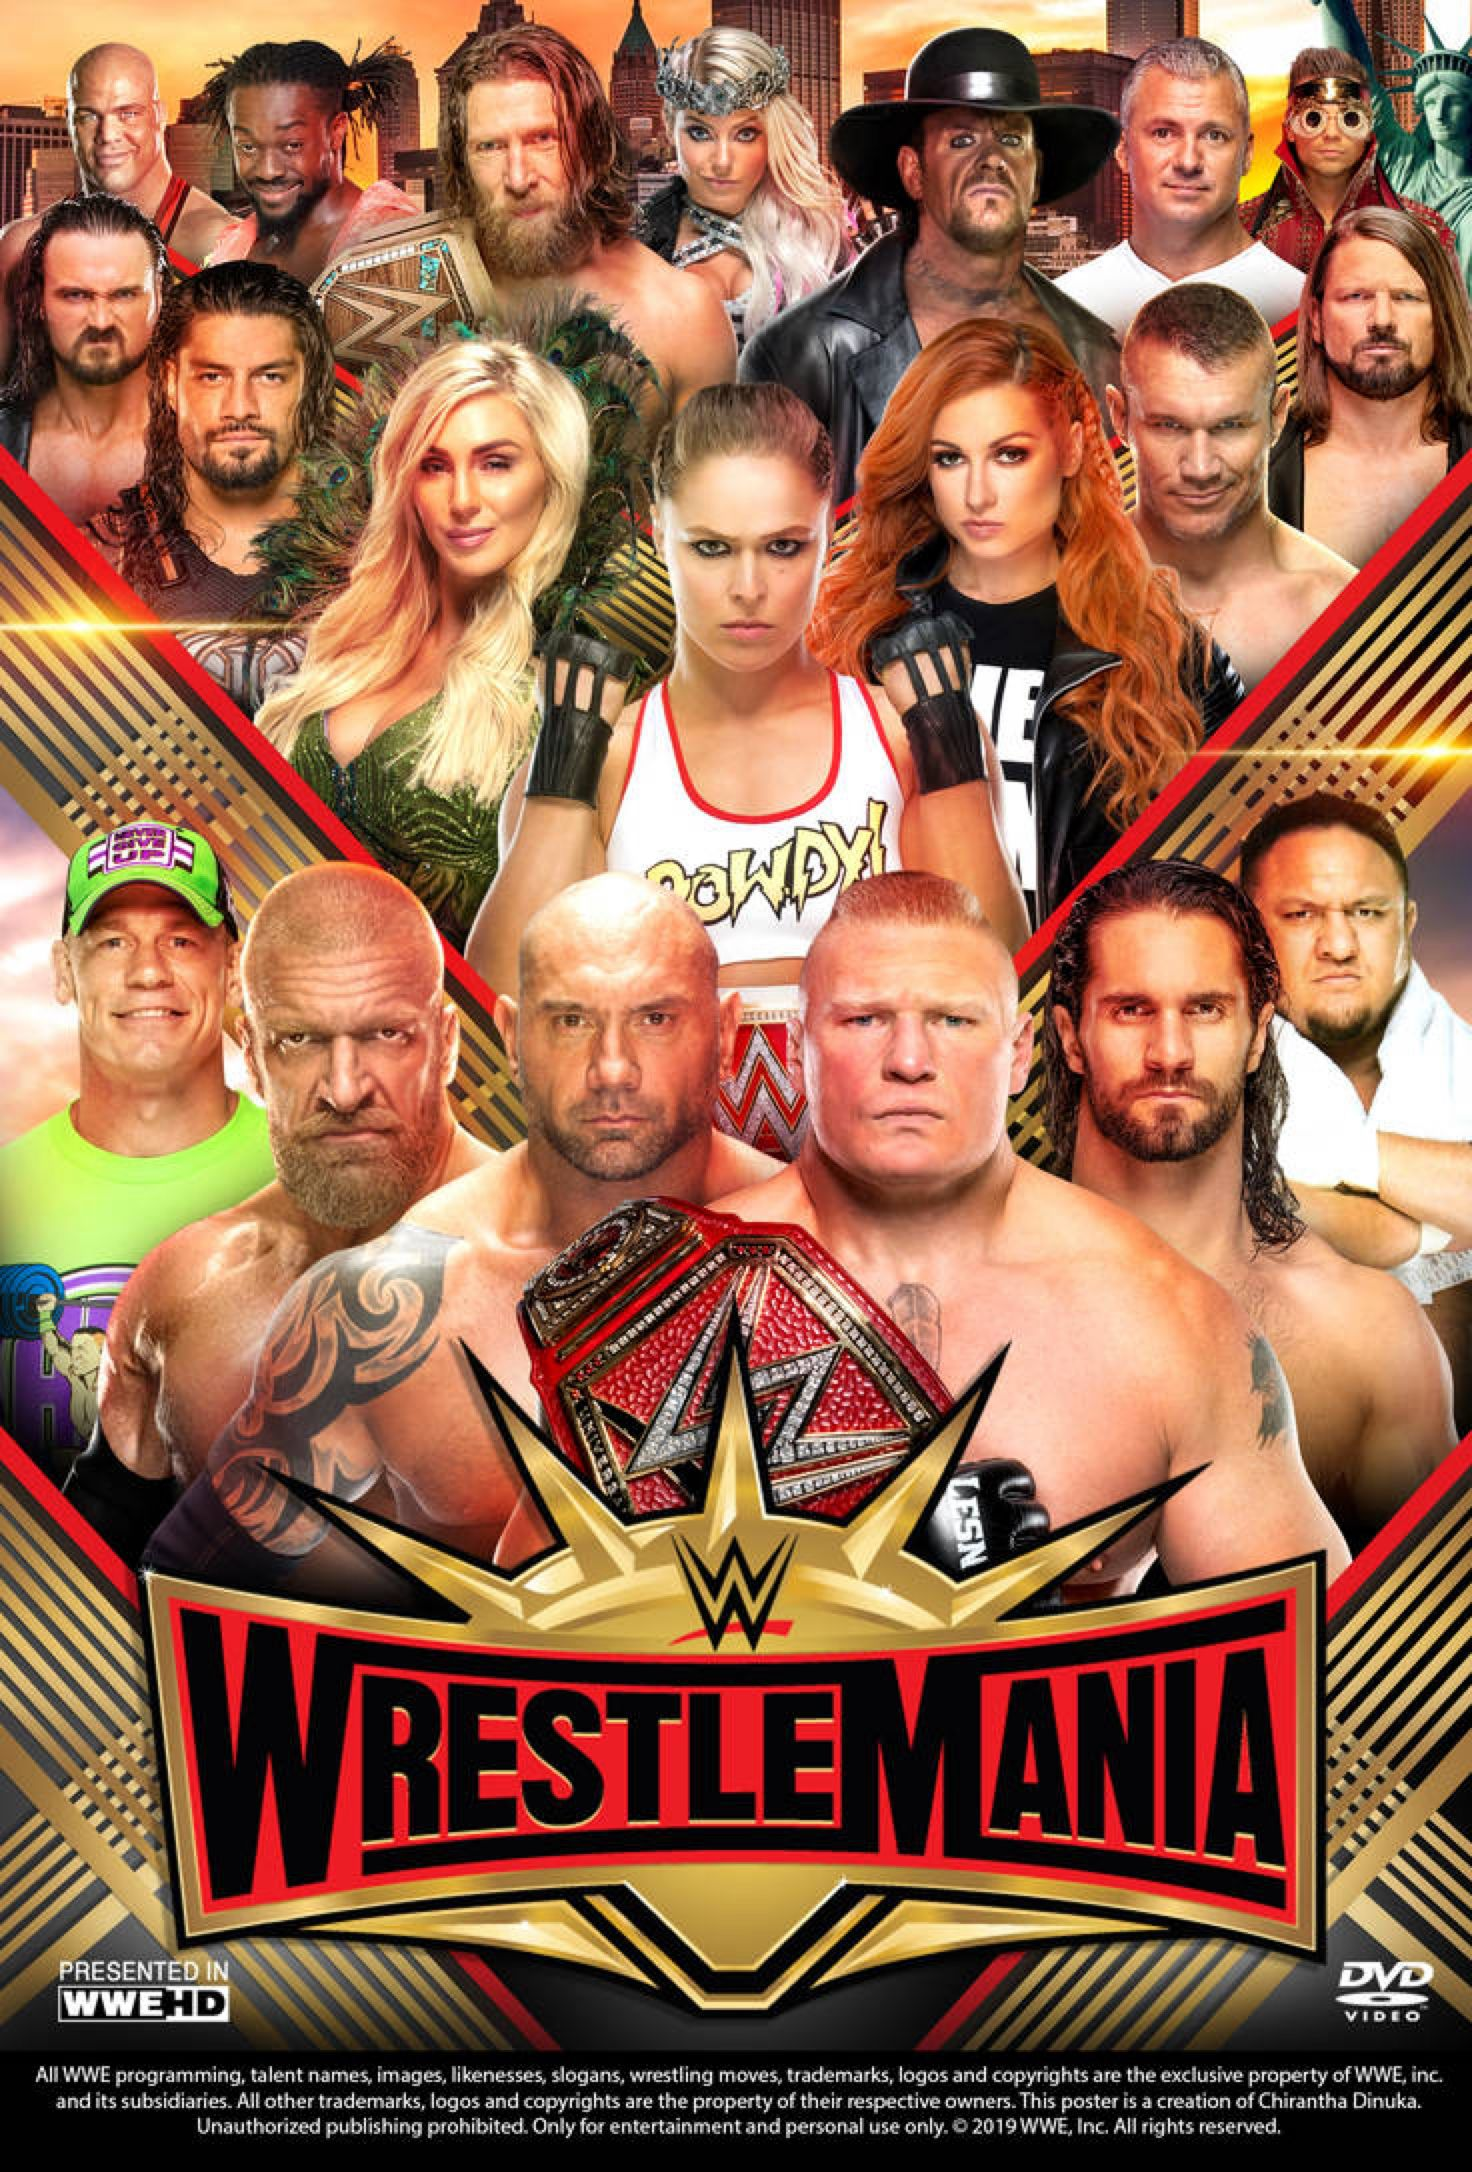 Wwe Wrestlemania 35 Poster By Chirantha On Deviantart With